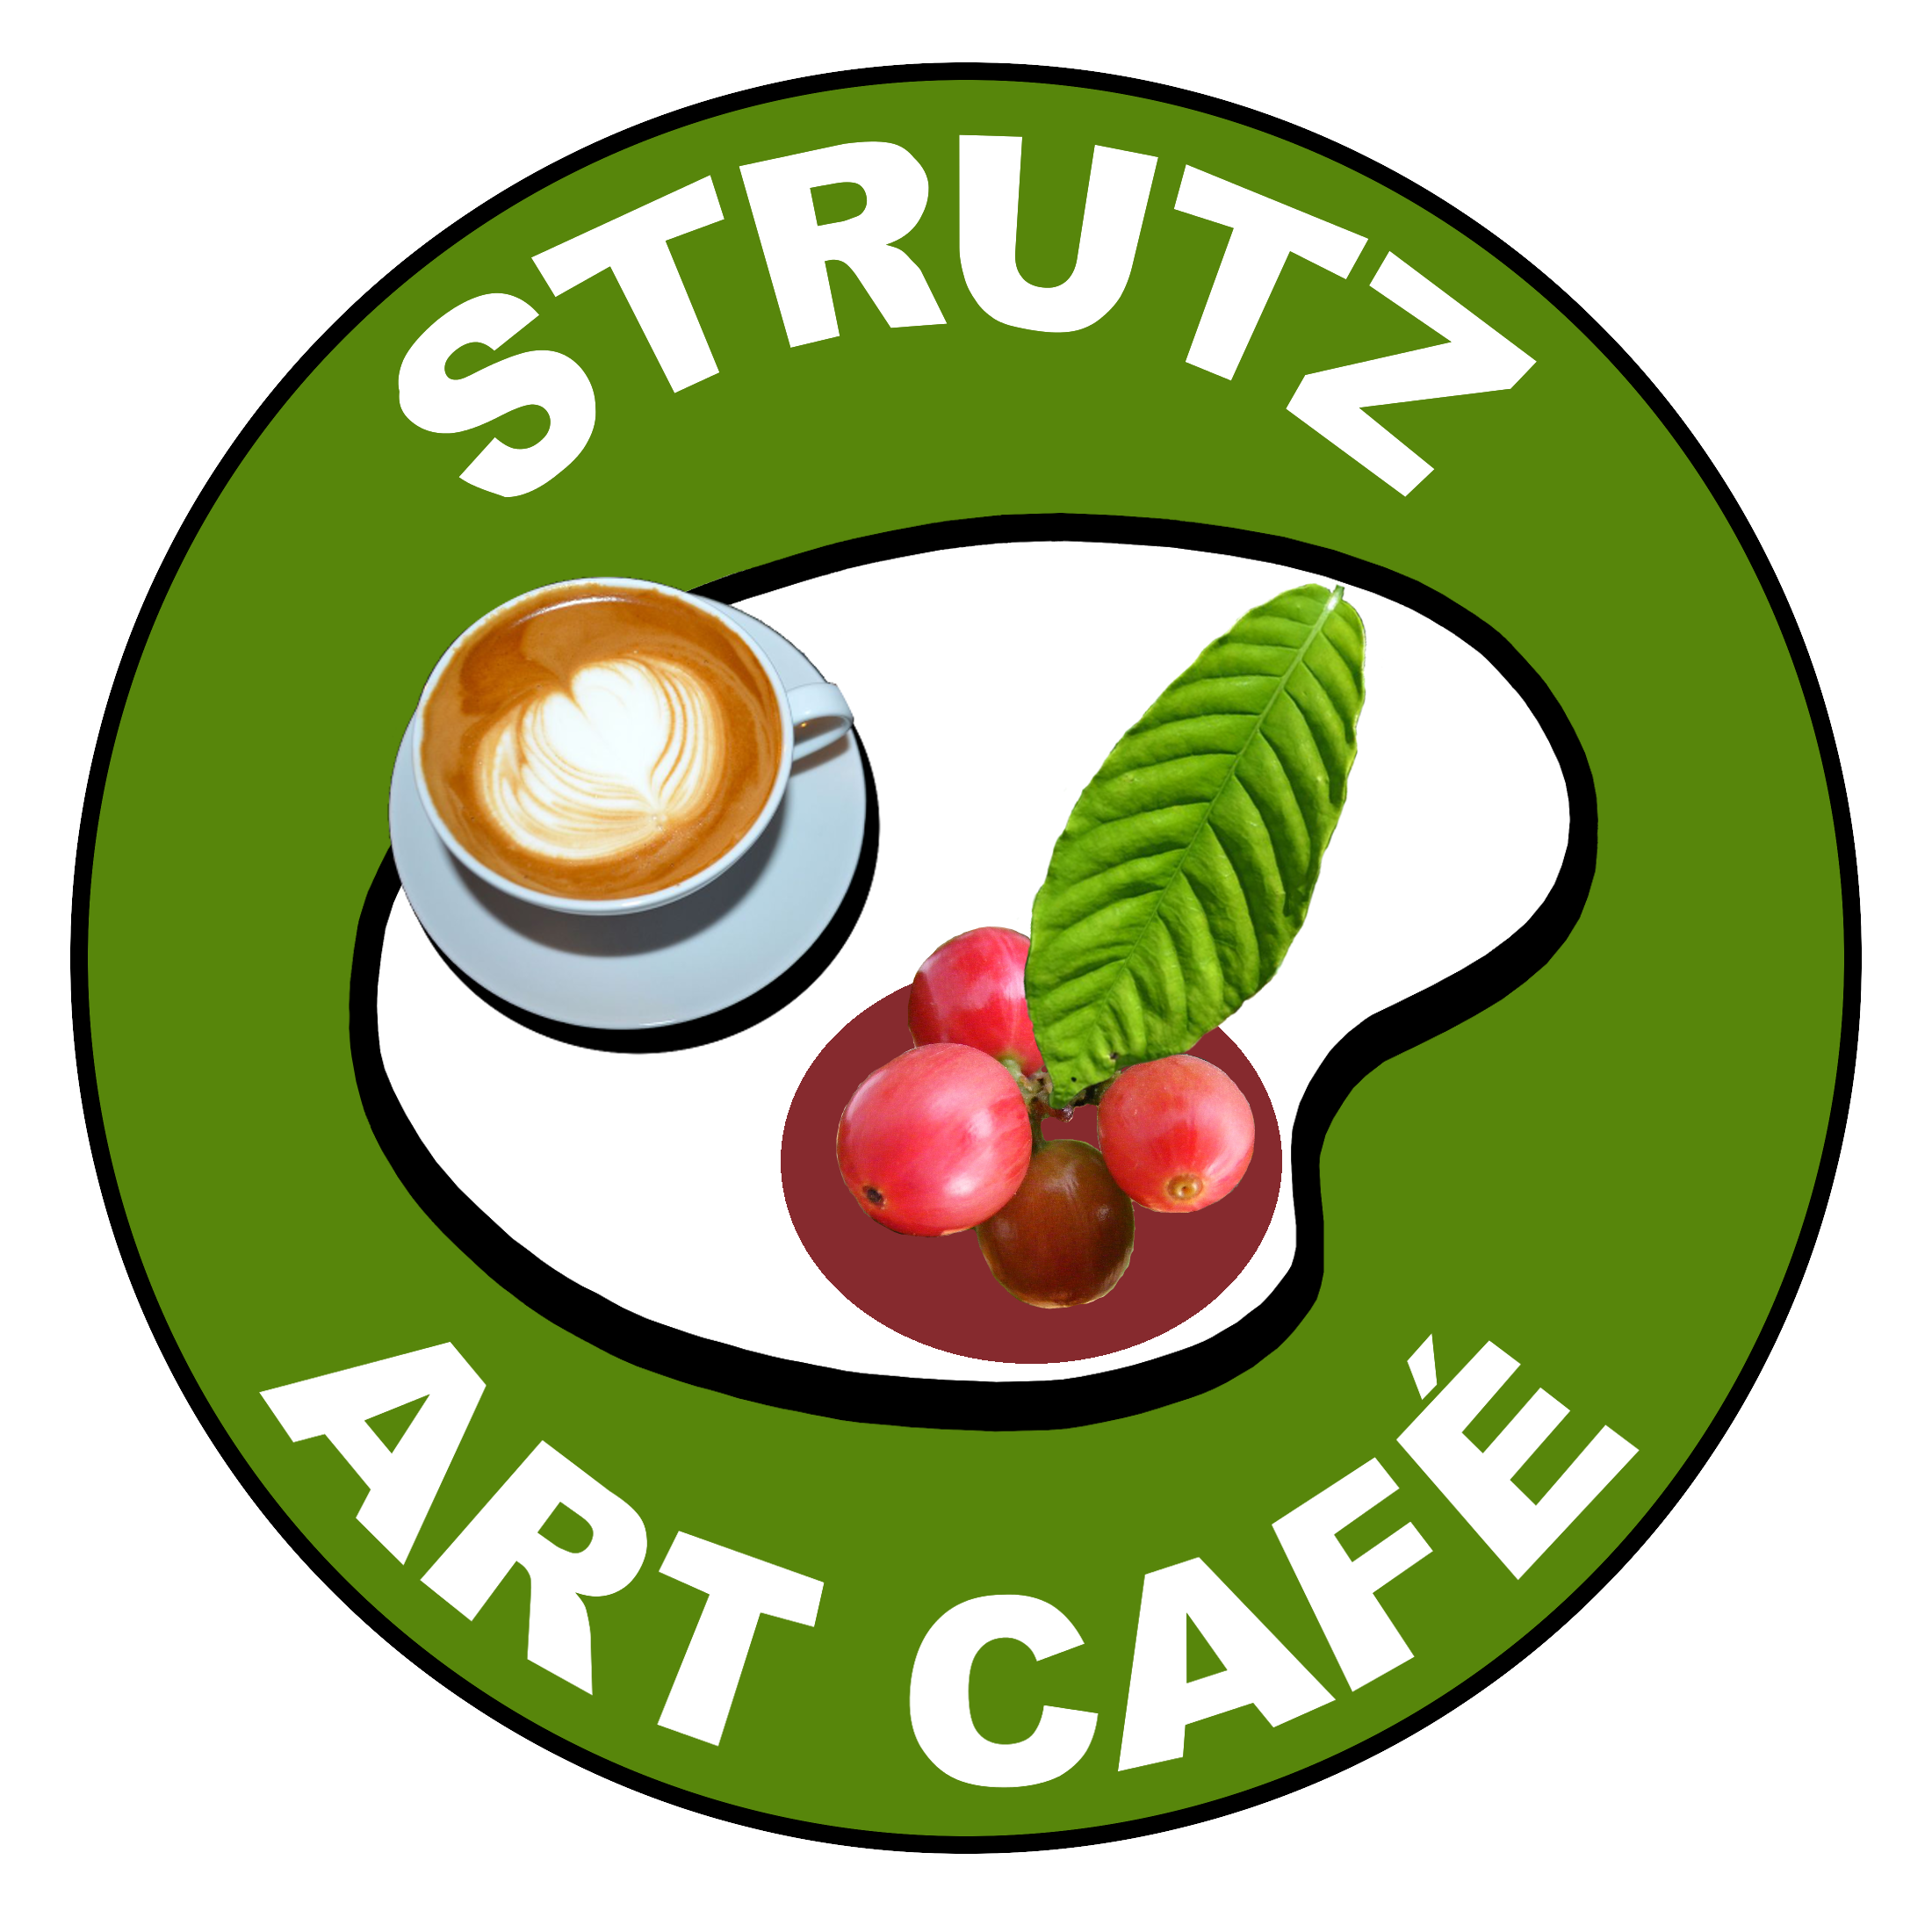 Logo Design Strutz Art Cafe ROUND1